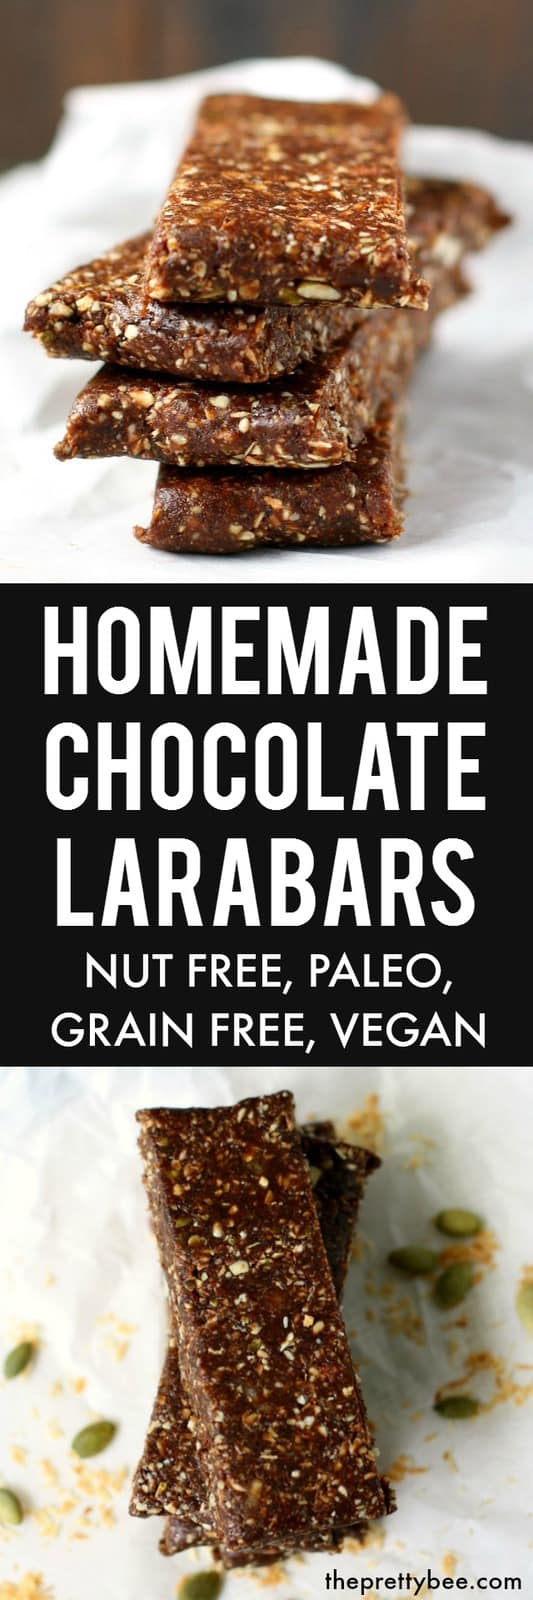 Delicious homemade chocolate larabars are the perfect snack that's refined sugar free, grain free, and nut free! #vegan #nutfree #glutenfree